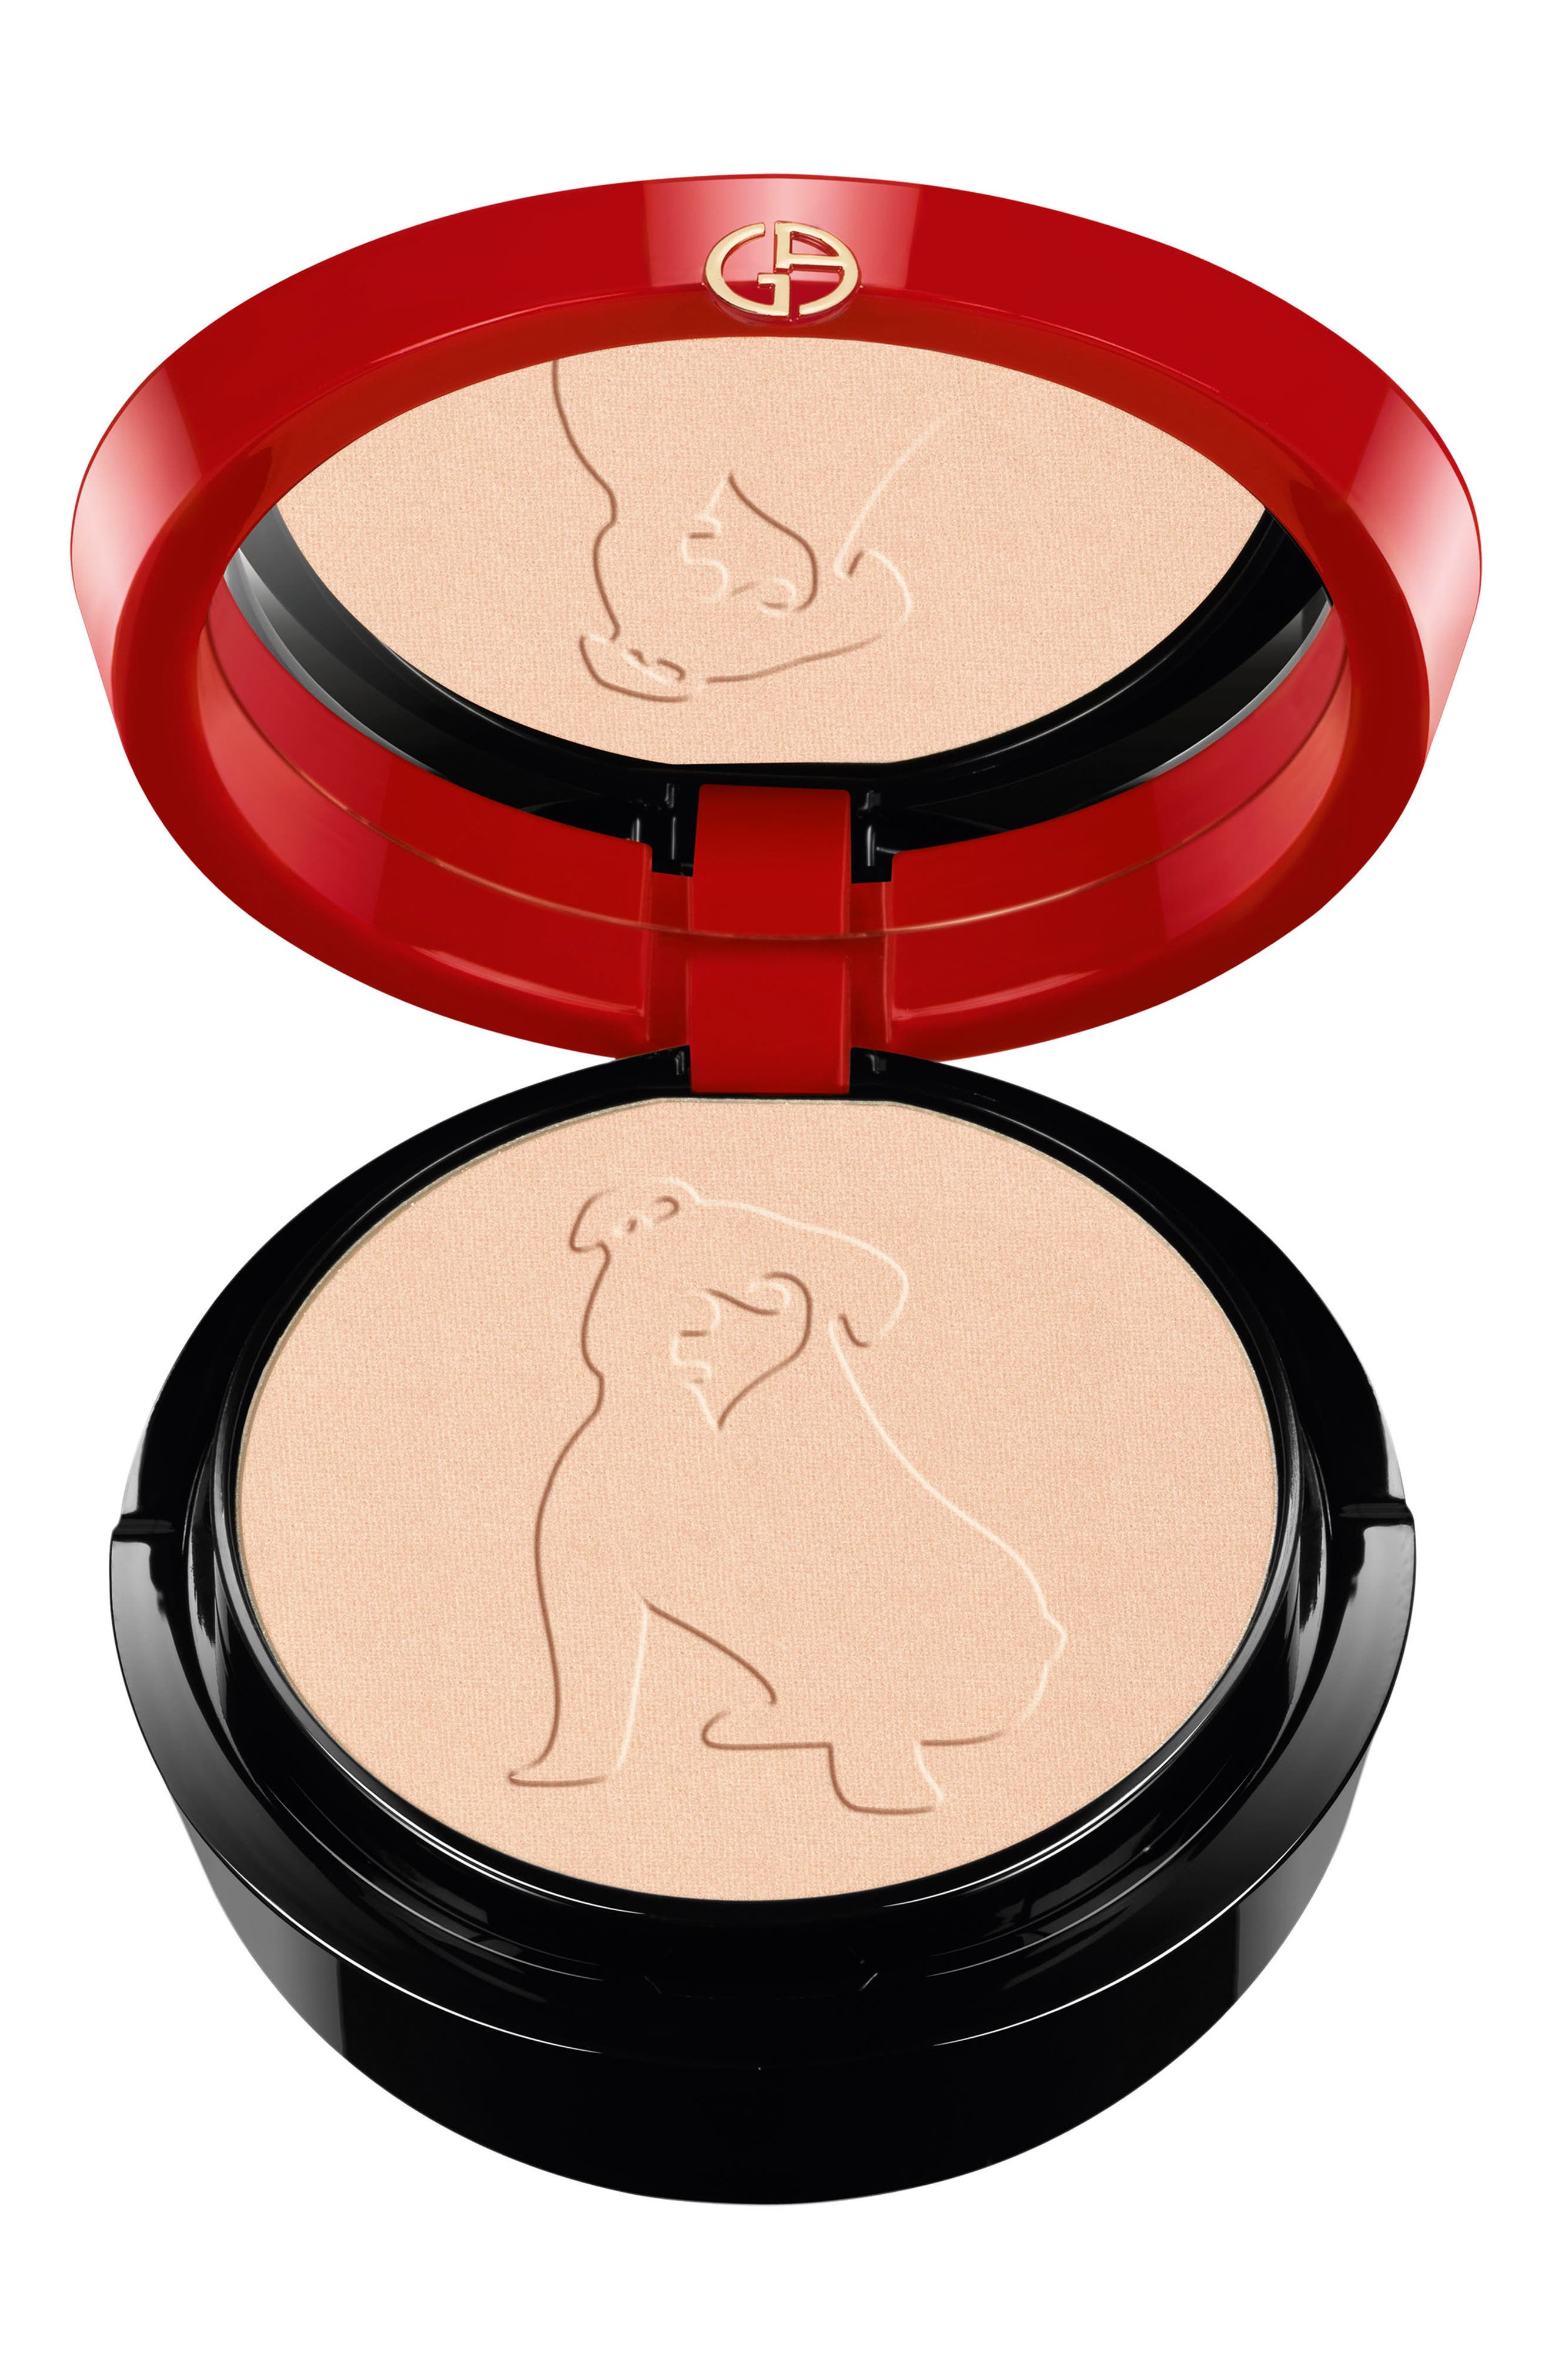 Giorgio Armani Chinese New Year Highlighting Palette (Limited Edition)